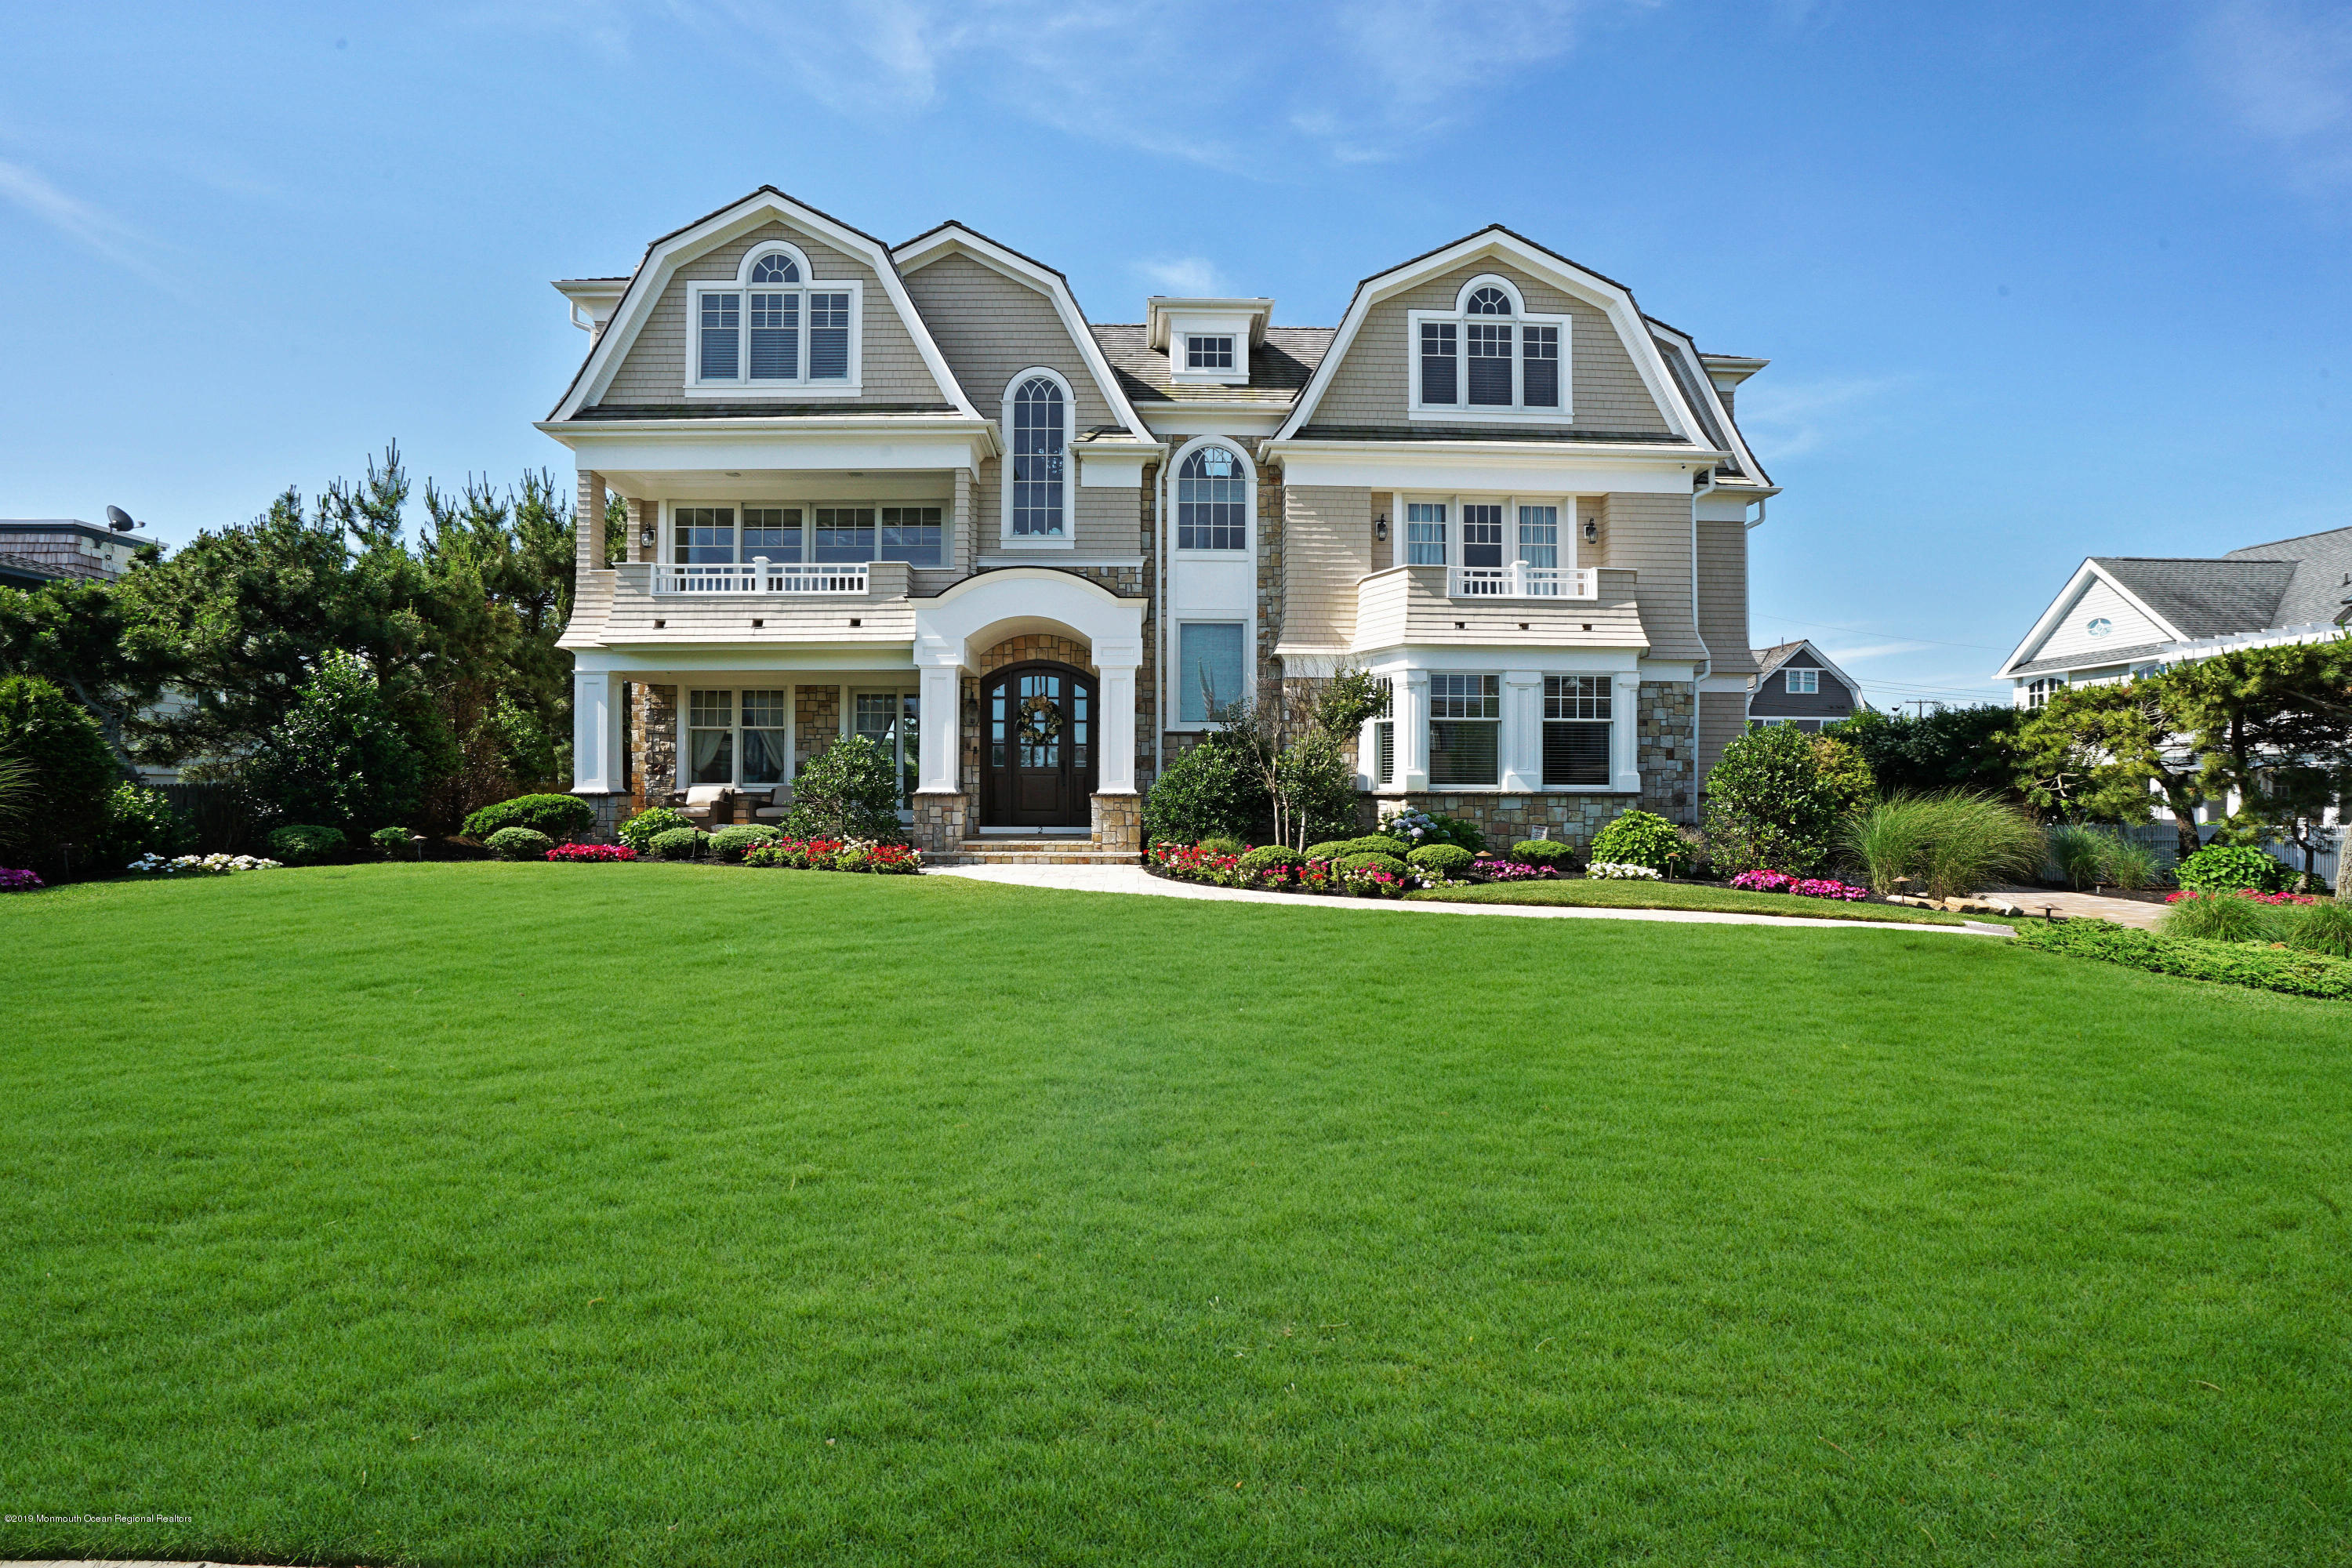 Photo of 2 Neptune Place, Sea Girt, NJ 08750